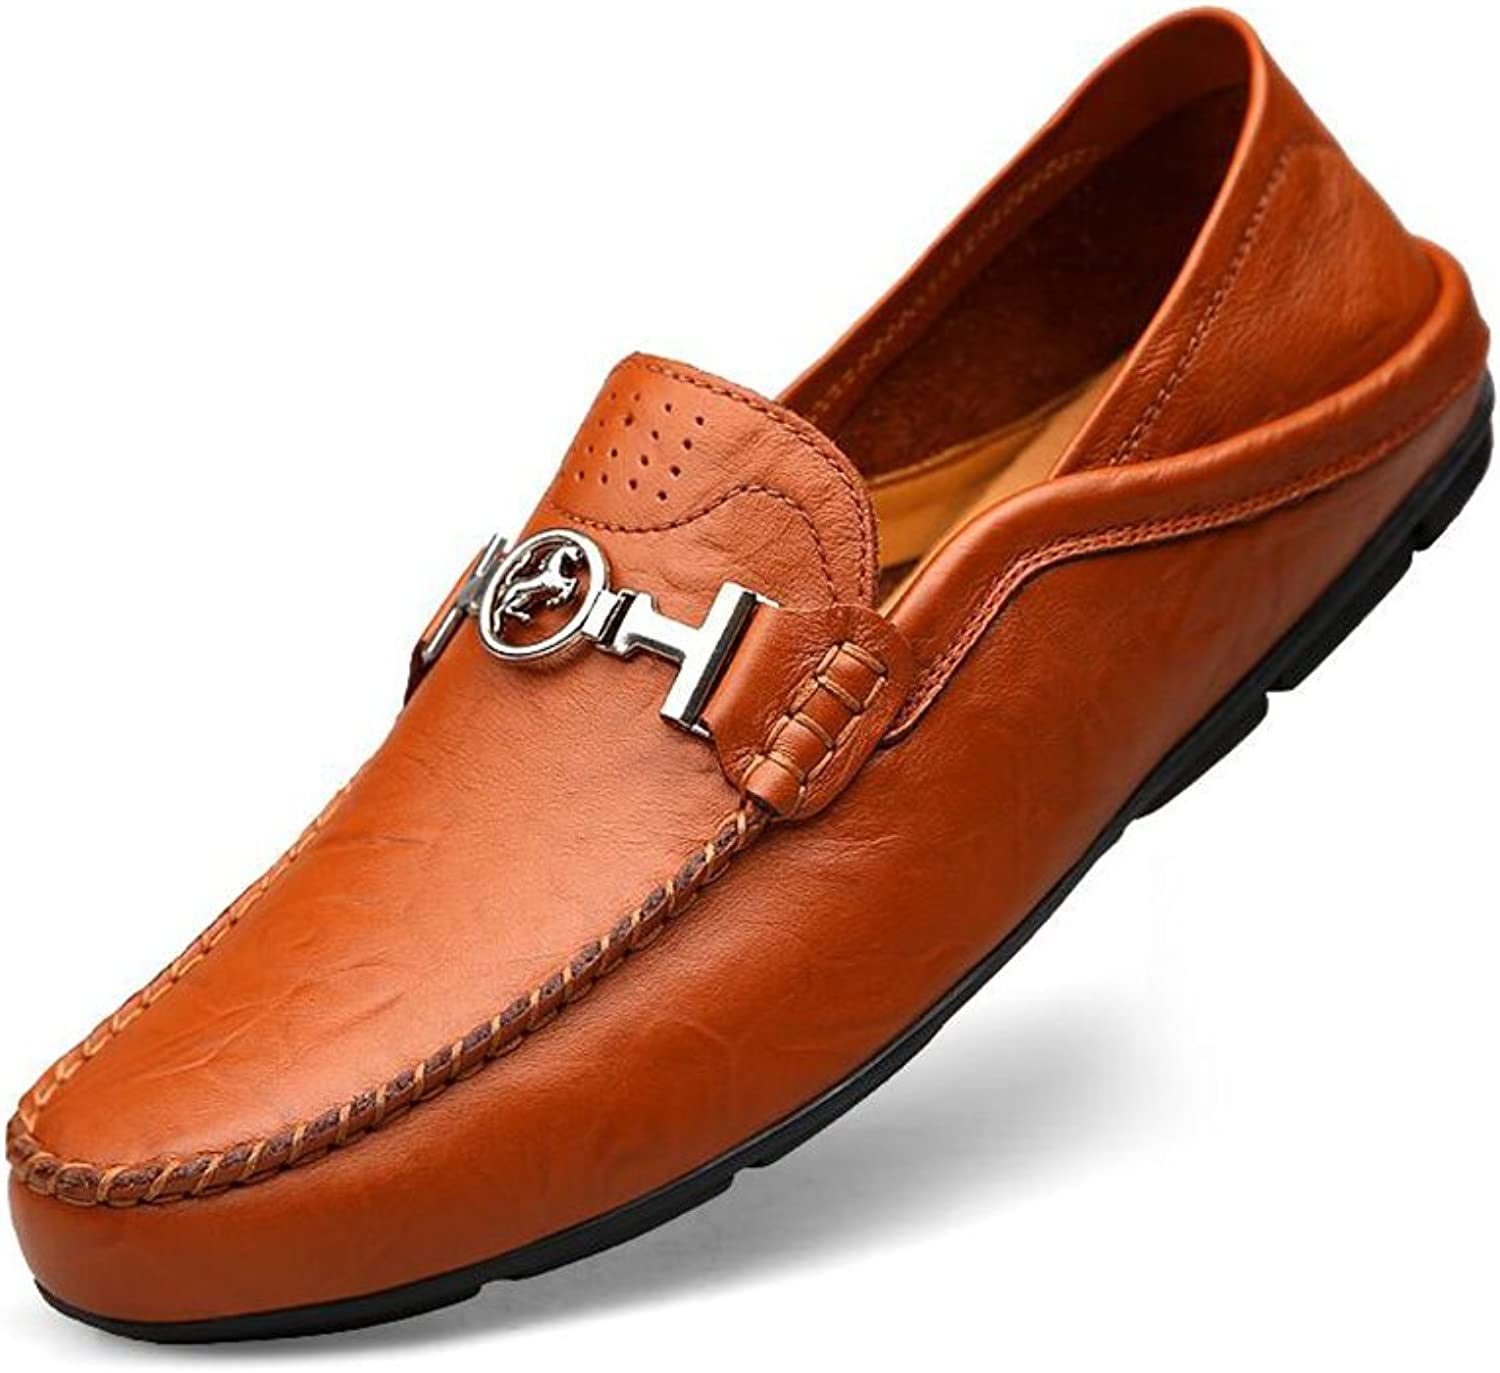 CJC shoes Men's Footwear Casual Leather Loafers Business Flat Driving Uniform Wedding Walking Office Moccasins Breathable (color   T2, Size   EU40 UK7)